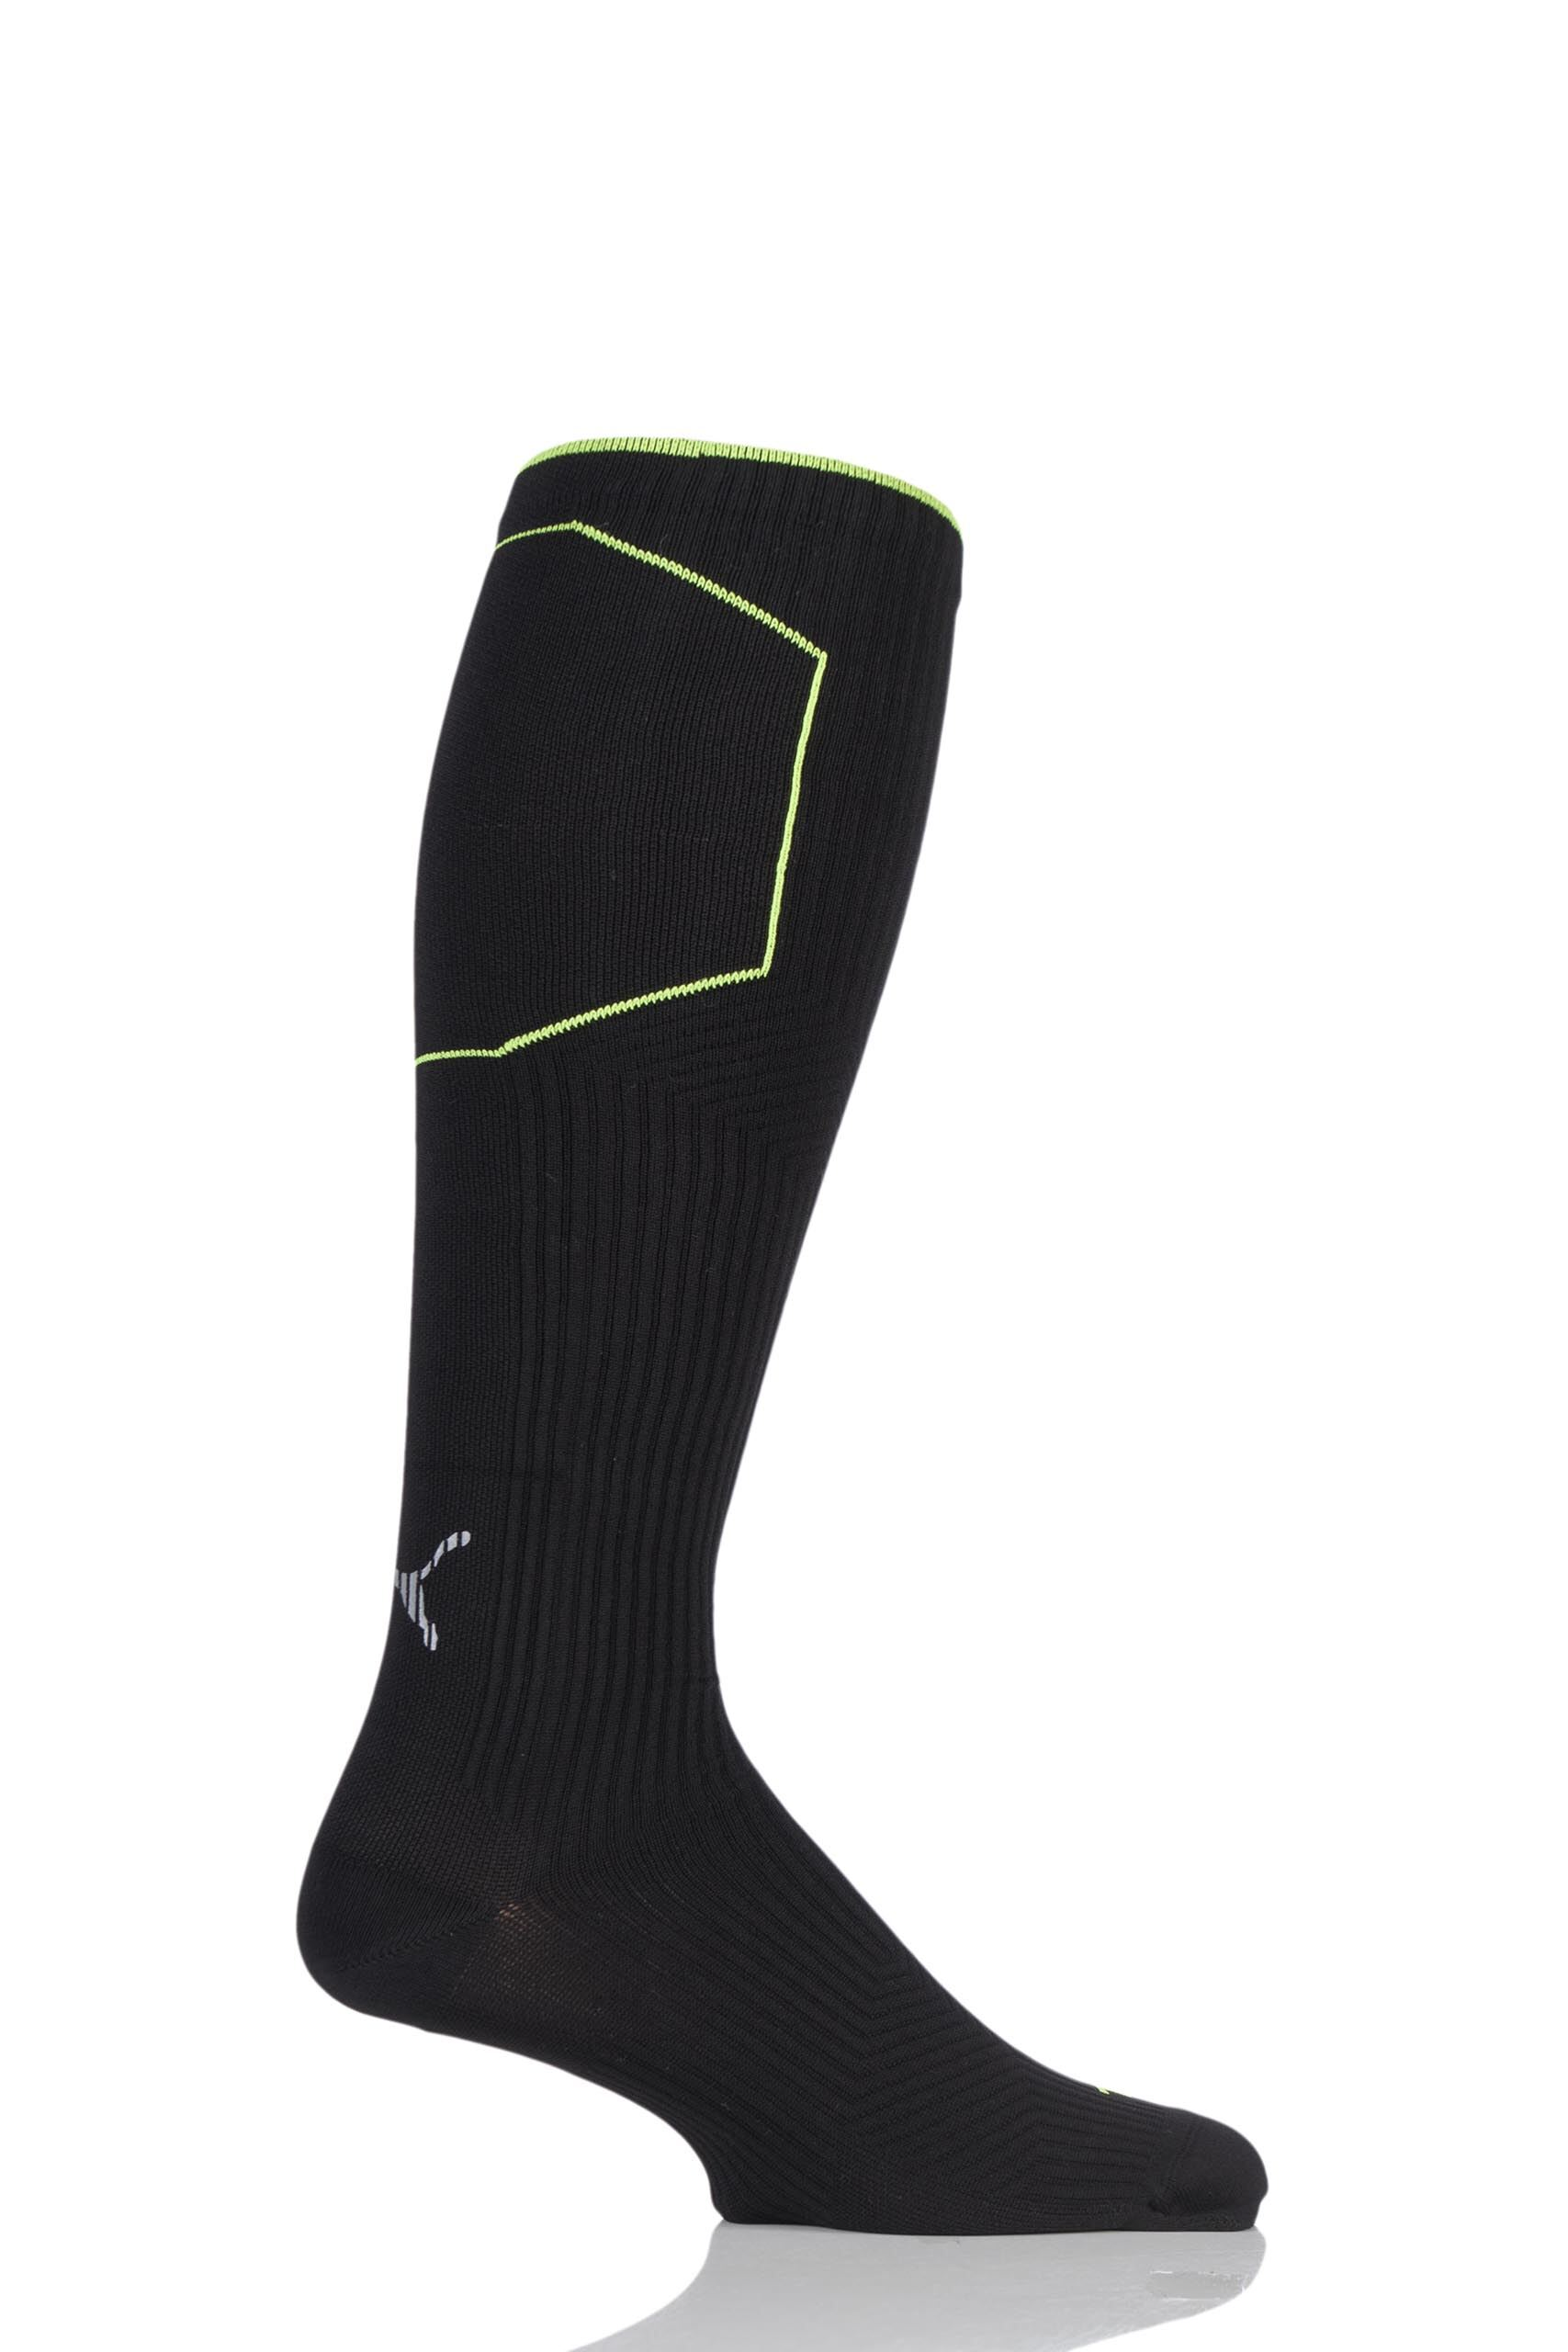 Image of 1 Pair Black Performance Running Compression Knee High Socks with Tactel Unisex 2.5-5 Unisex - Puma